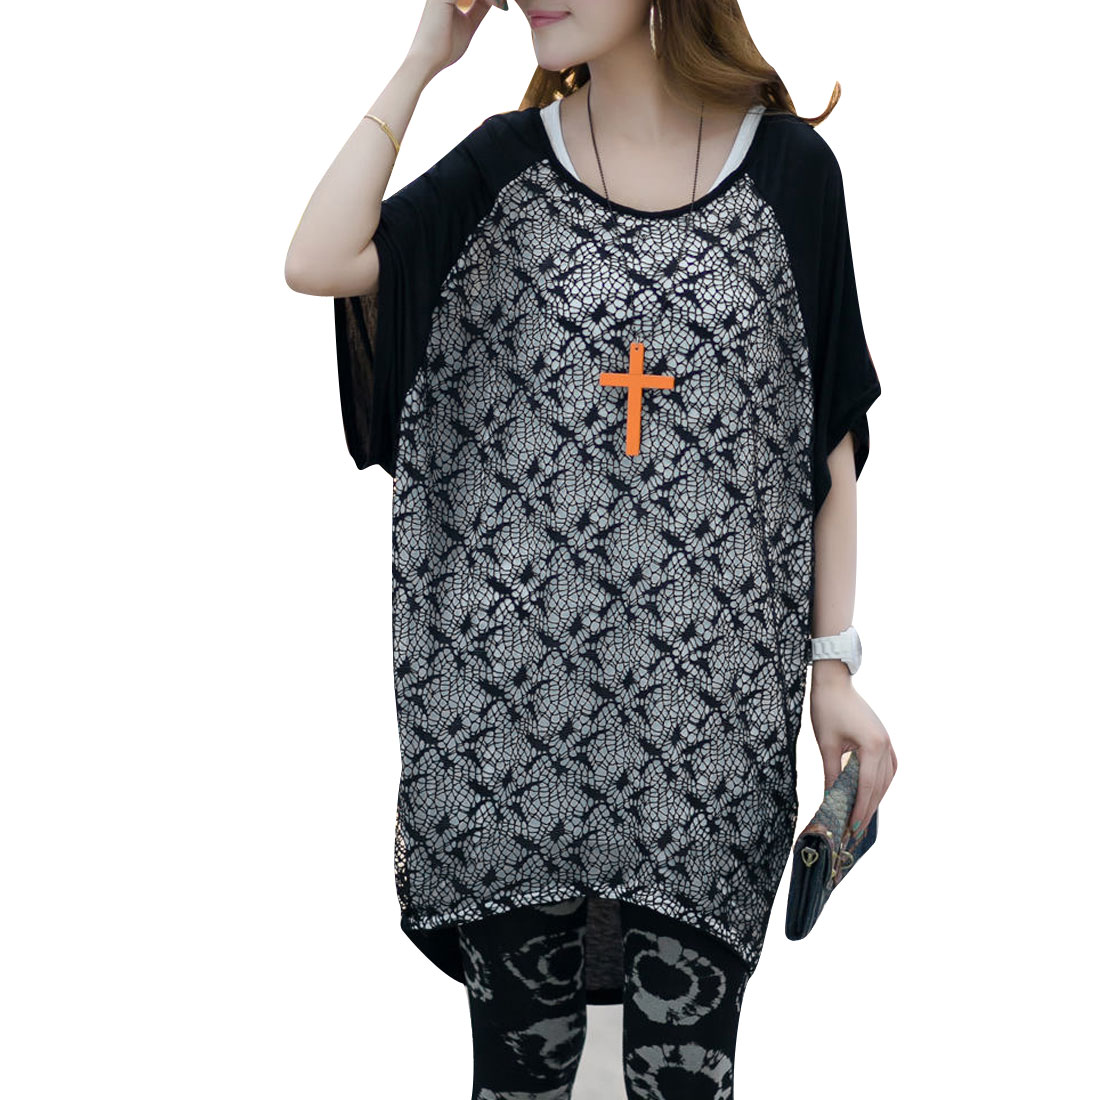 Lady Two-Tone Black White Low-High Hem Splice Front Loose Casual Shirt M